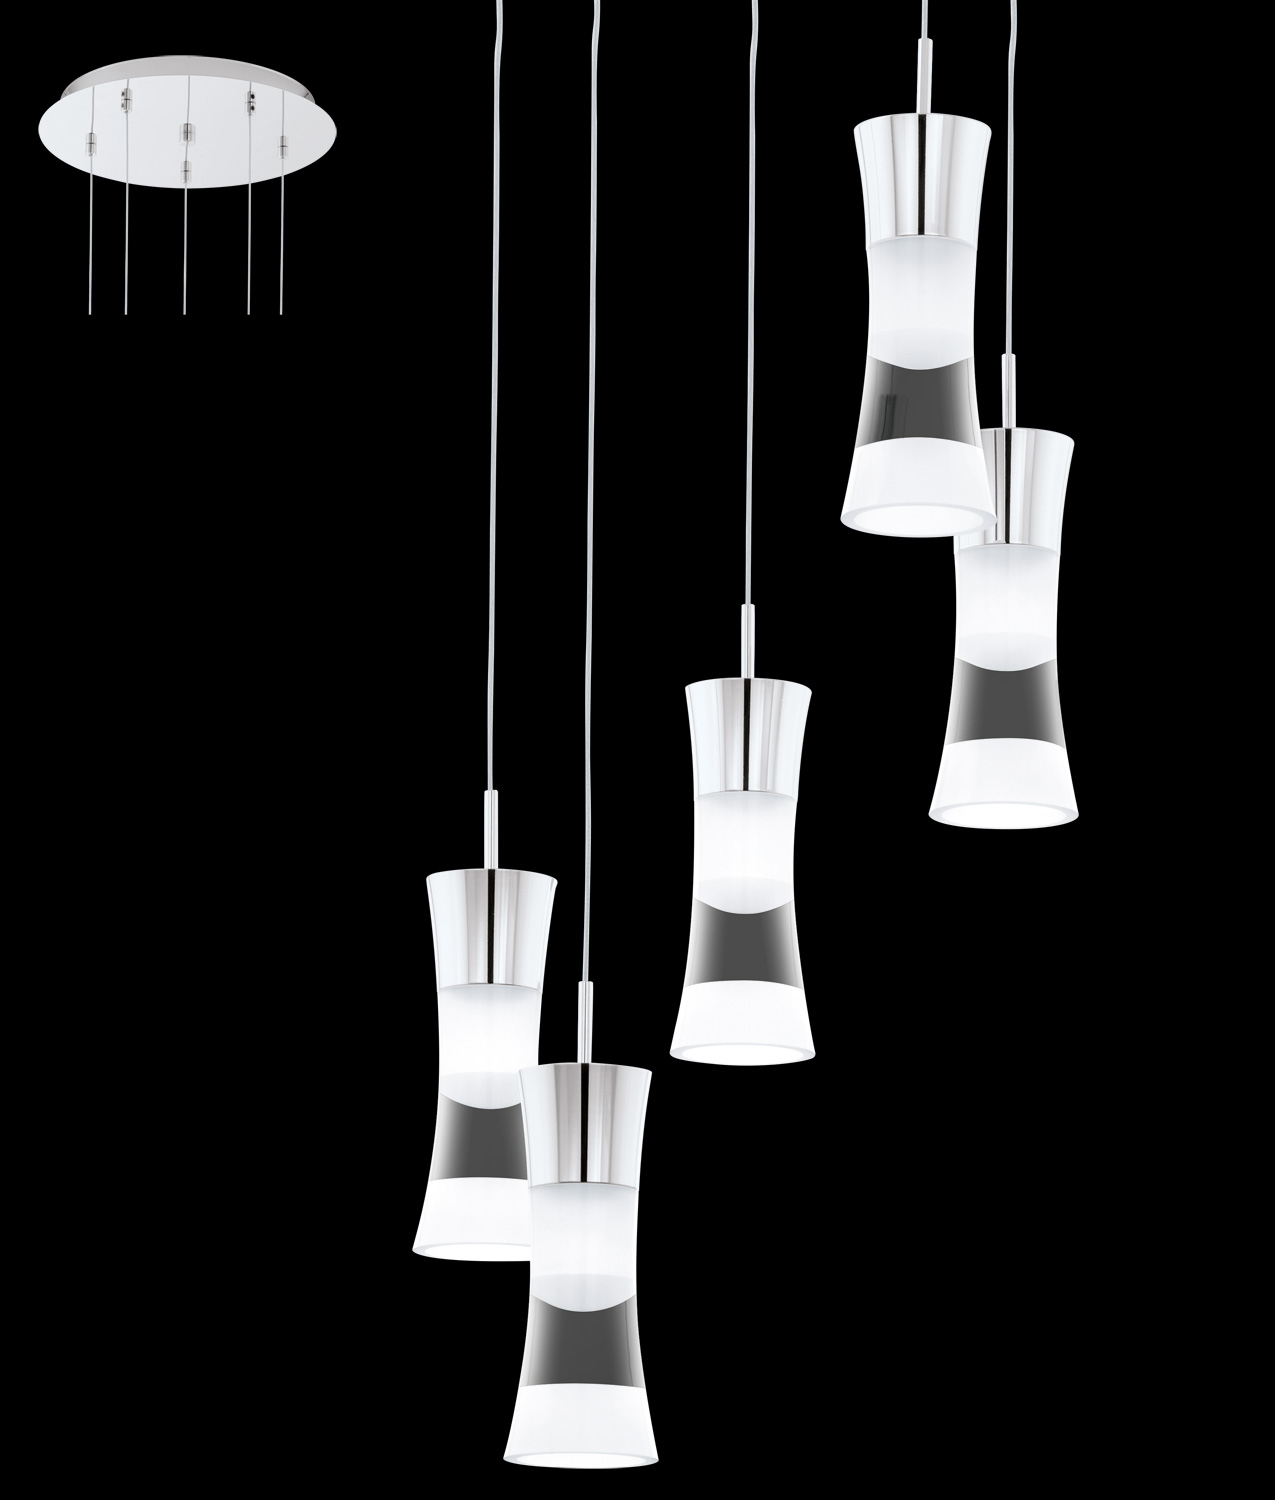 LED Multi Drop Light Pendant - 5 pendant light fixture